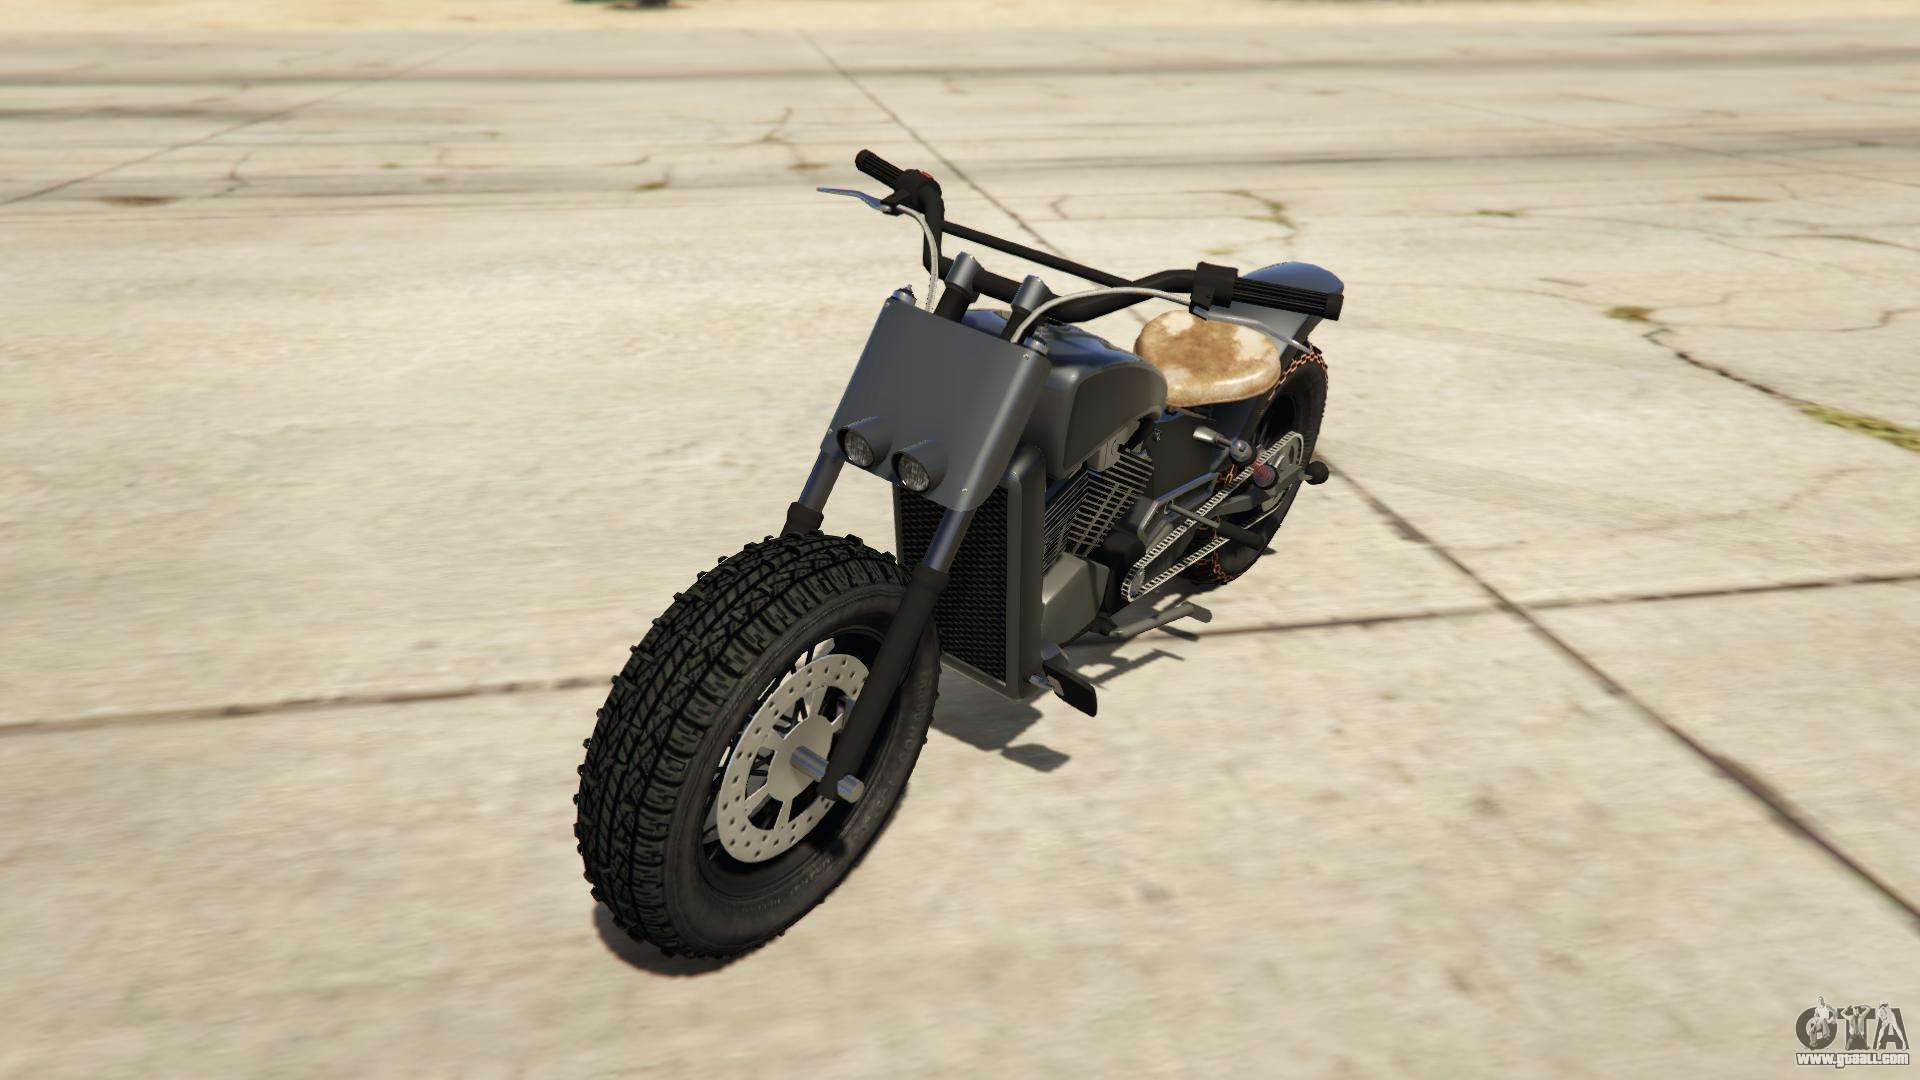 Western Motorcycle Company Gargoyle from GTA Online - front view